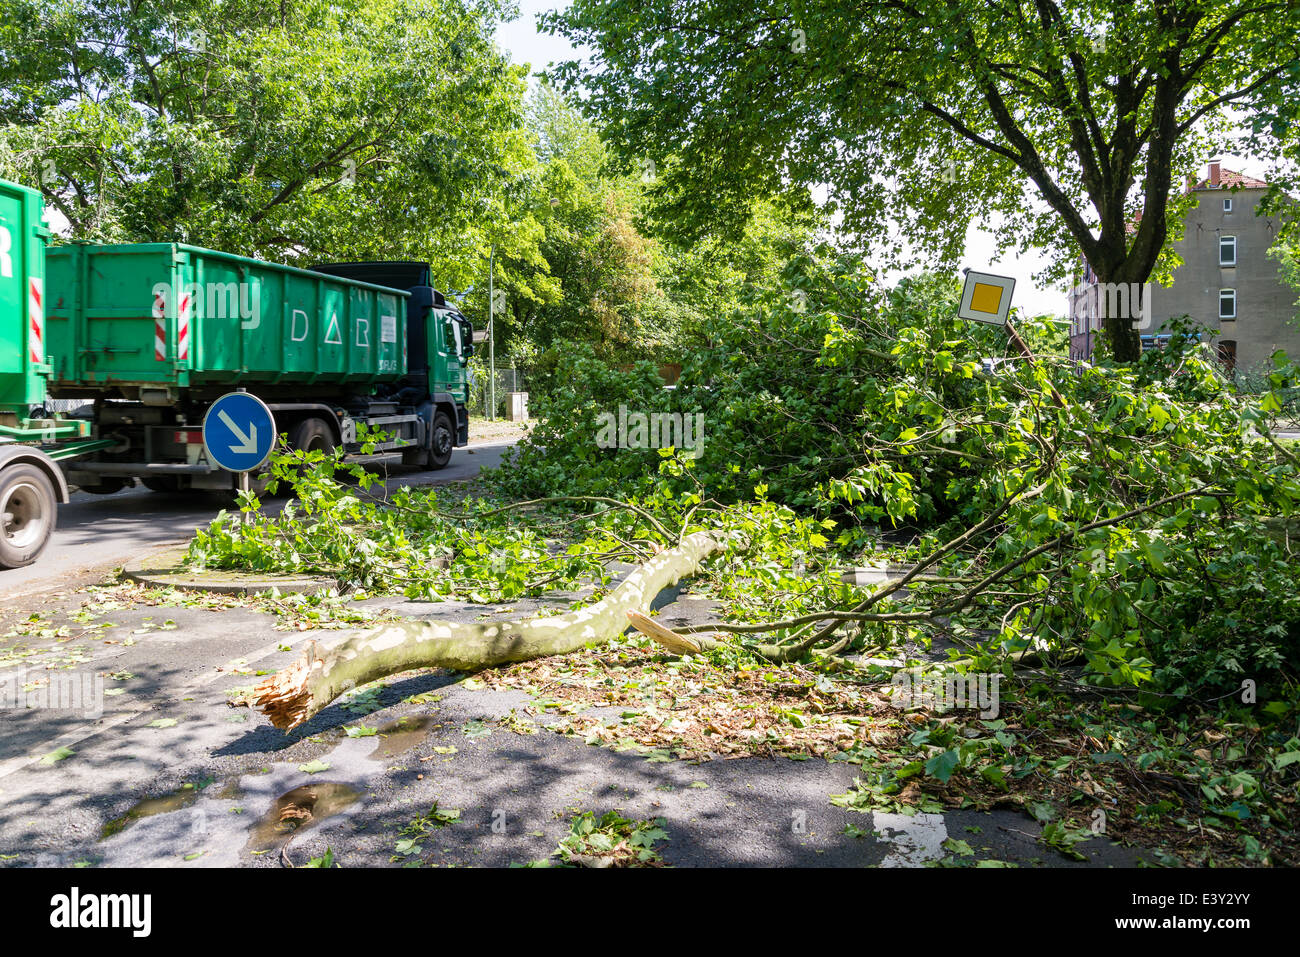 A fallen part of a tree lay on a street in Herne, Ruhr area, Western Germany, after the severe storm front Ela - Stock Image